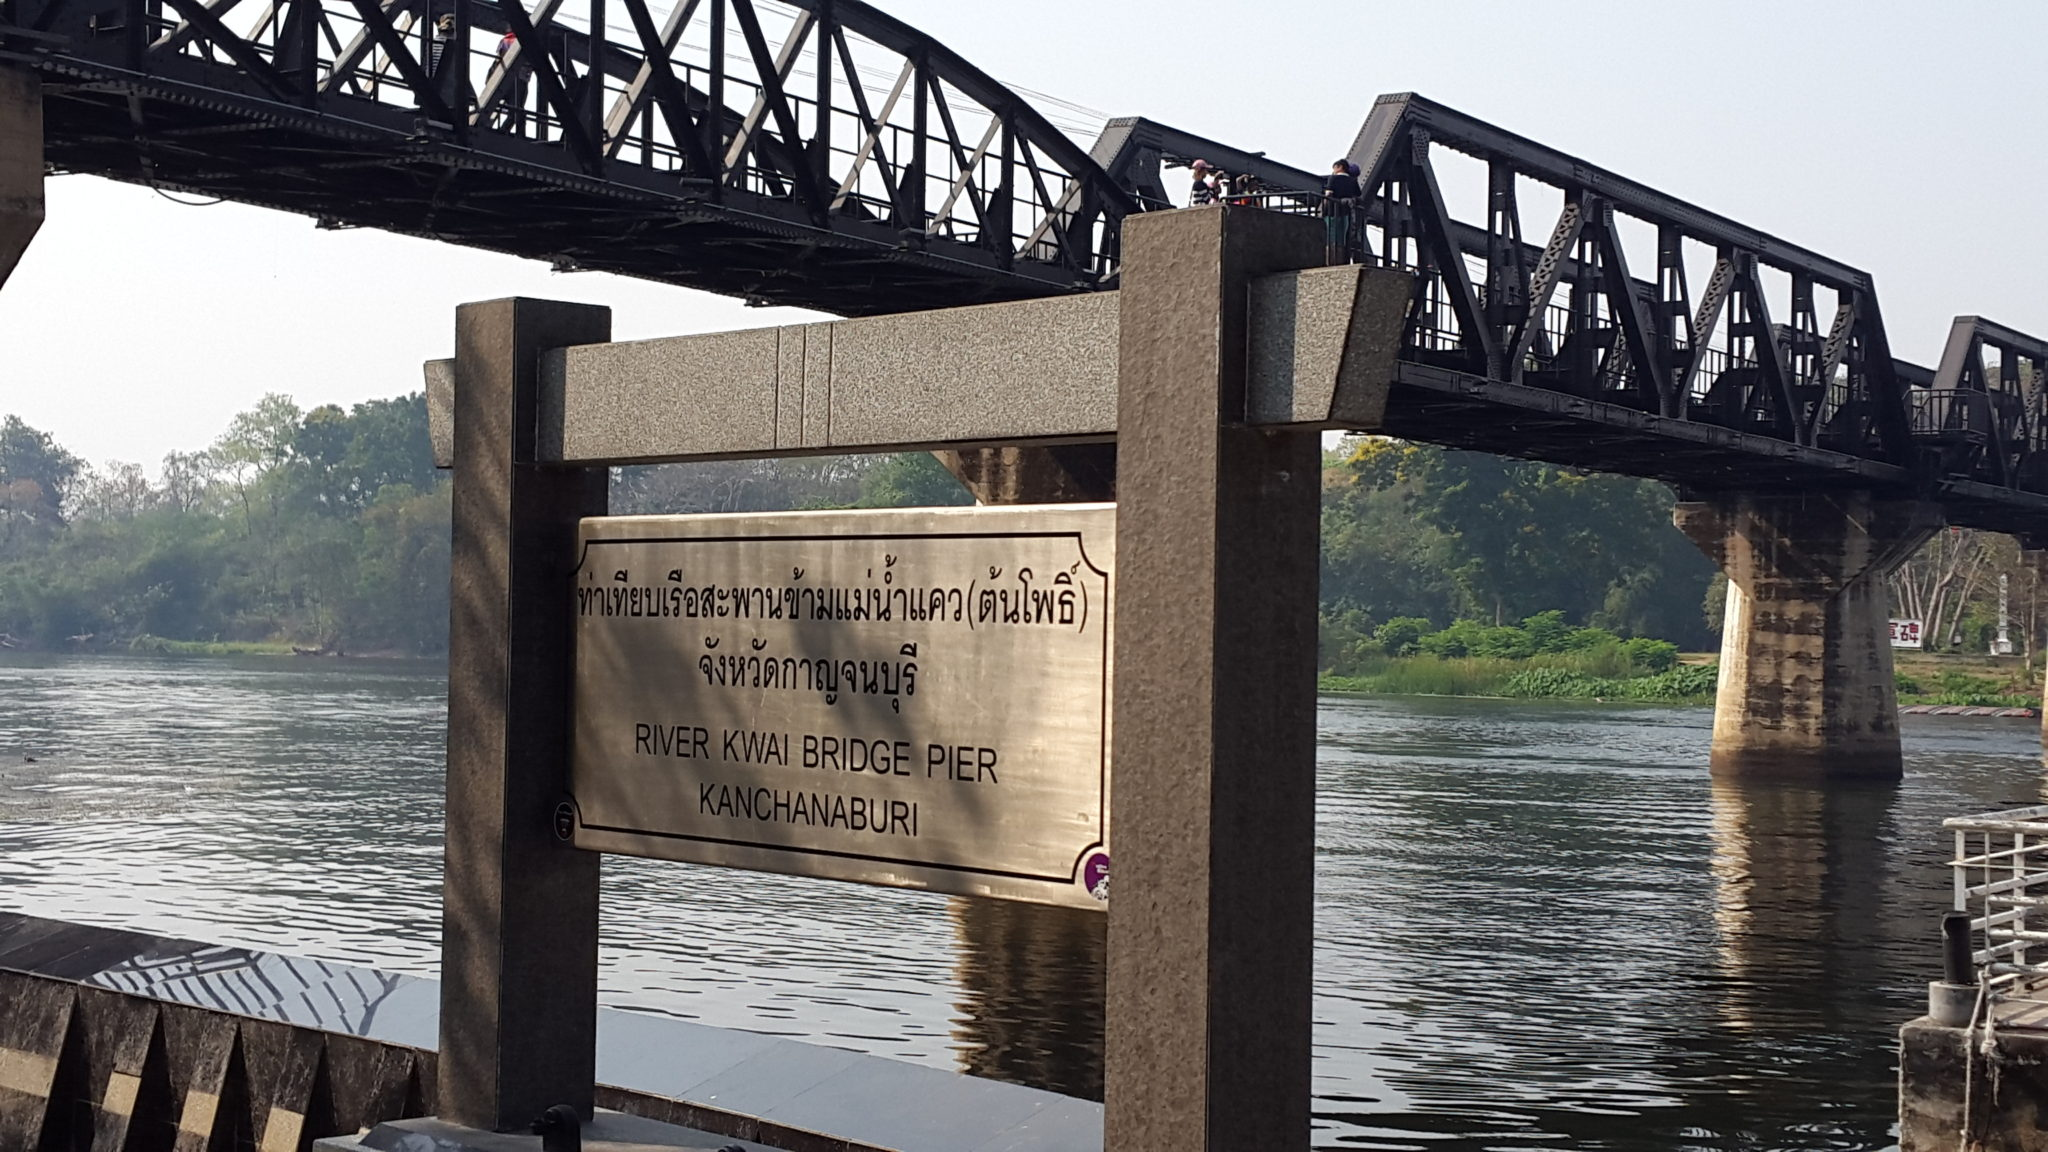 The Bridge on the River Kwai, Thailand